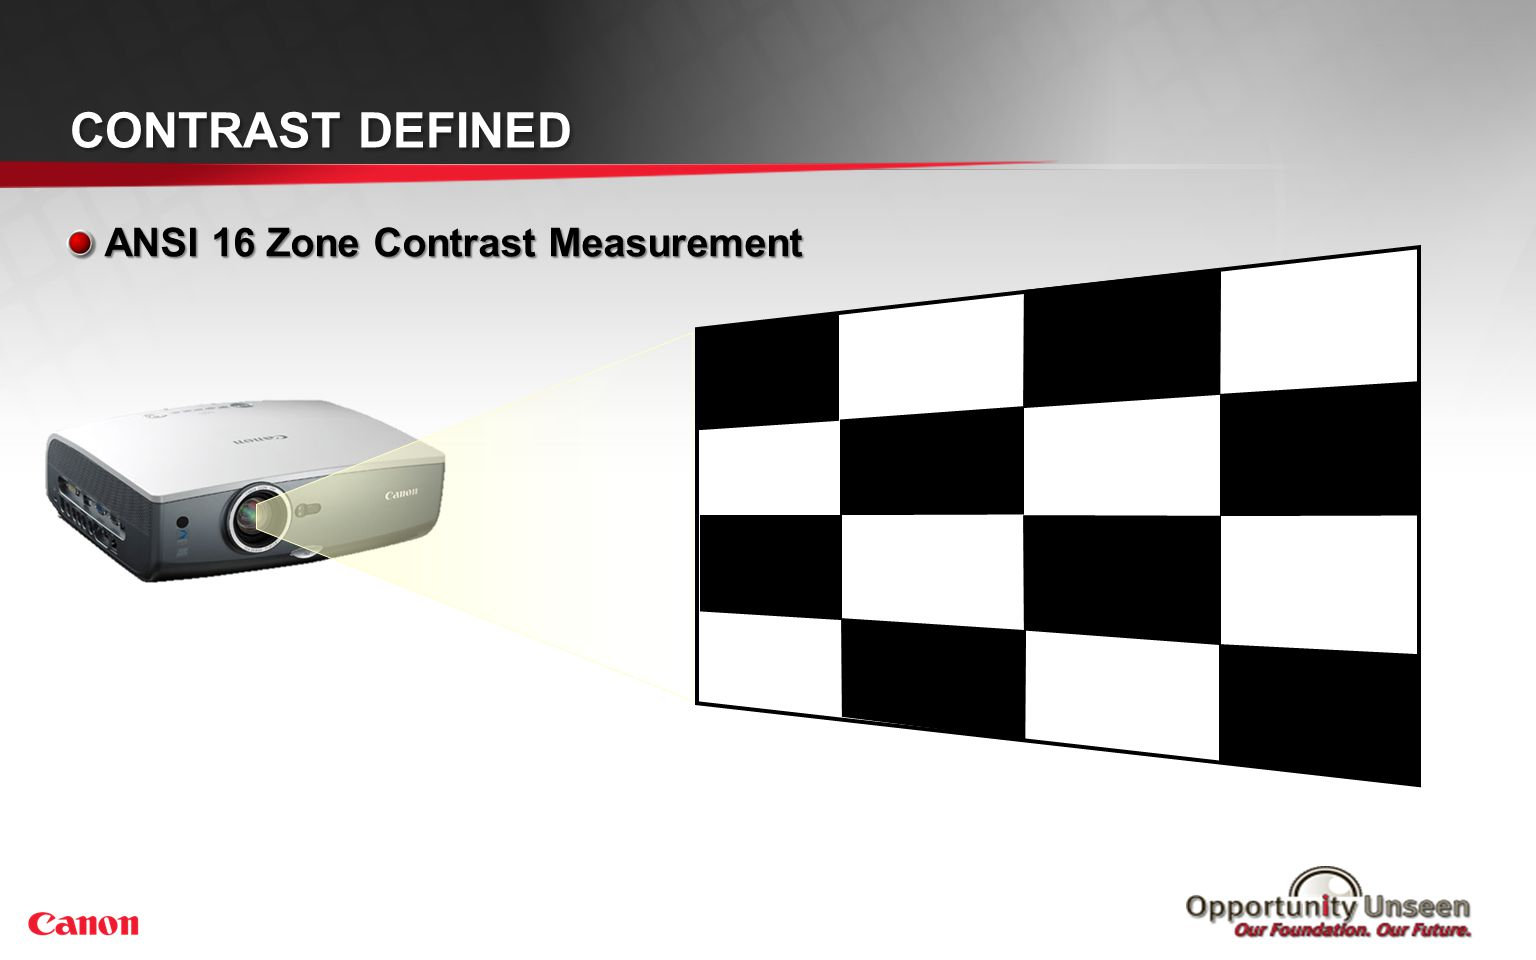 ANSI 16 Zone Contrast Measurement CONTRAST DEFINED